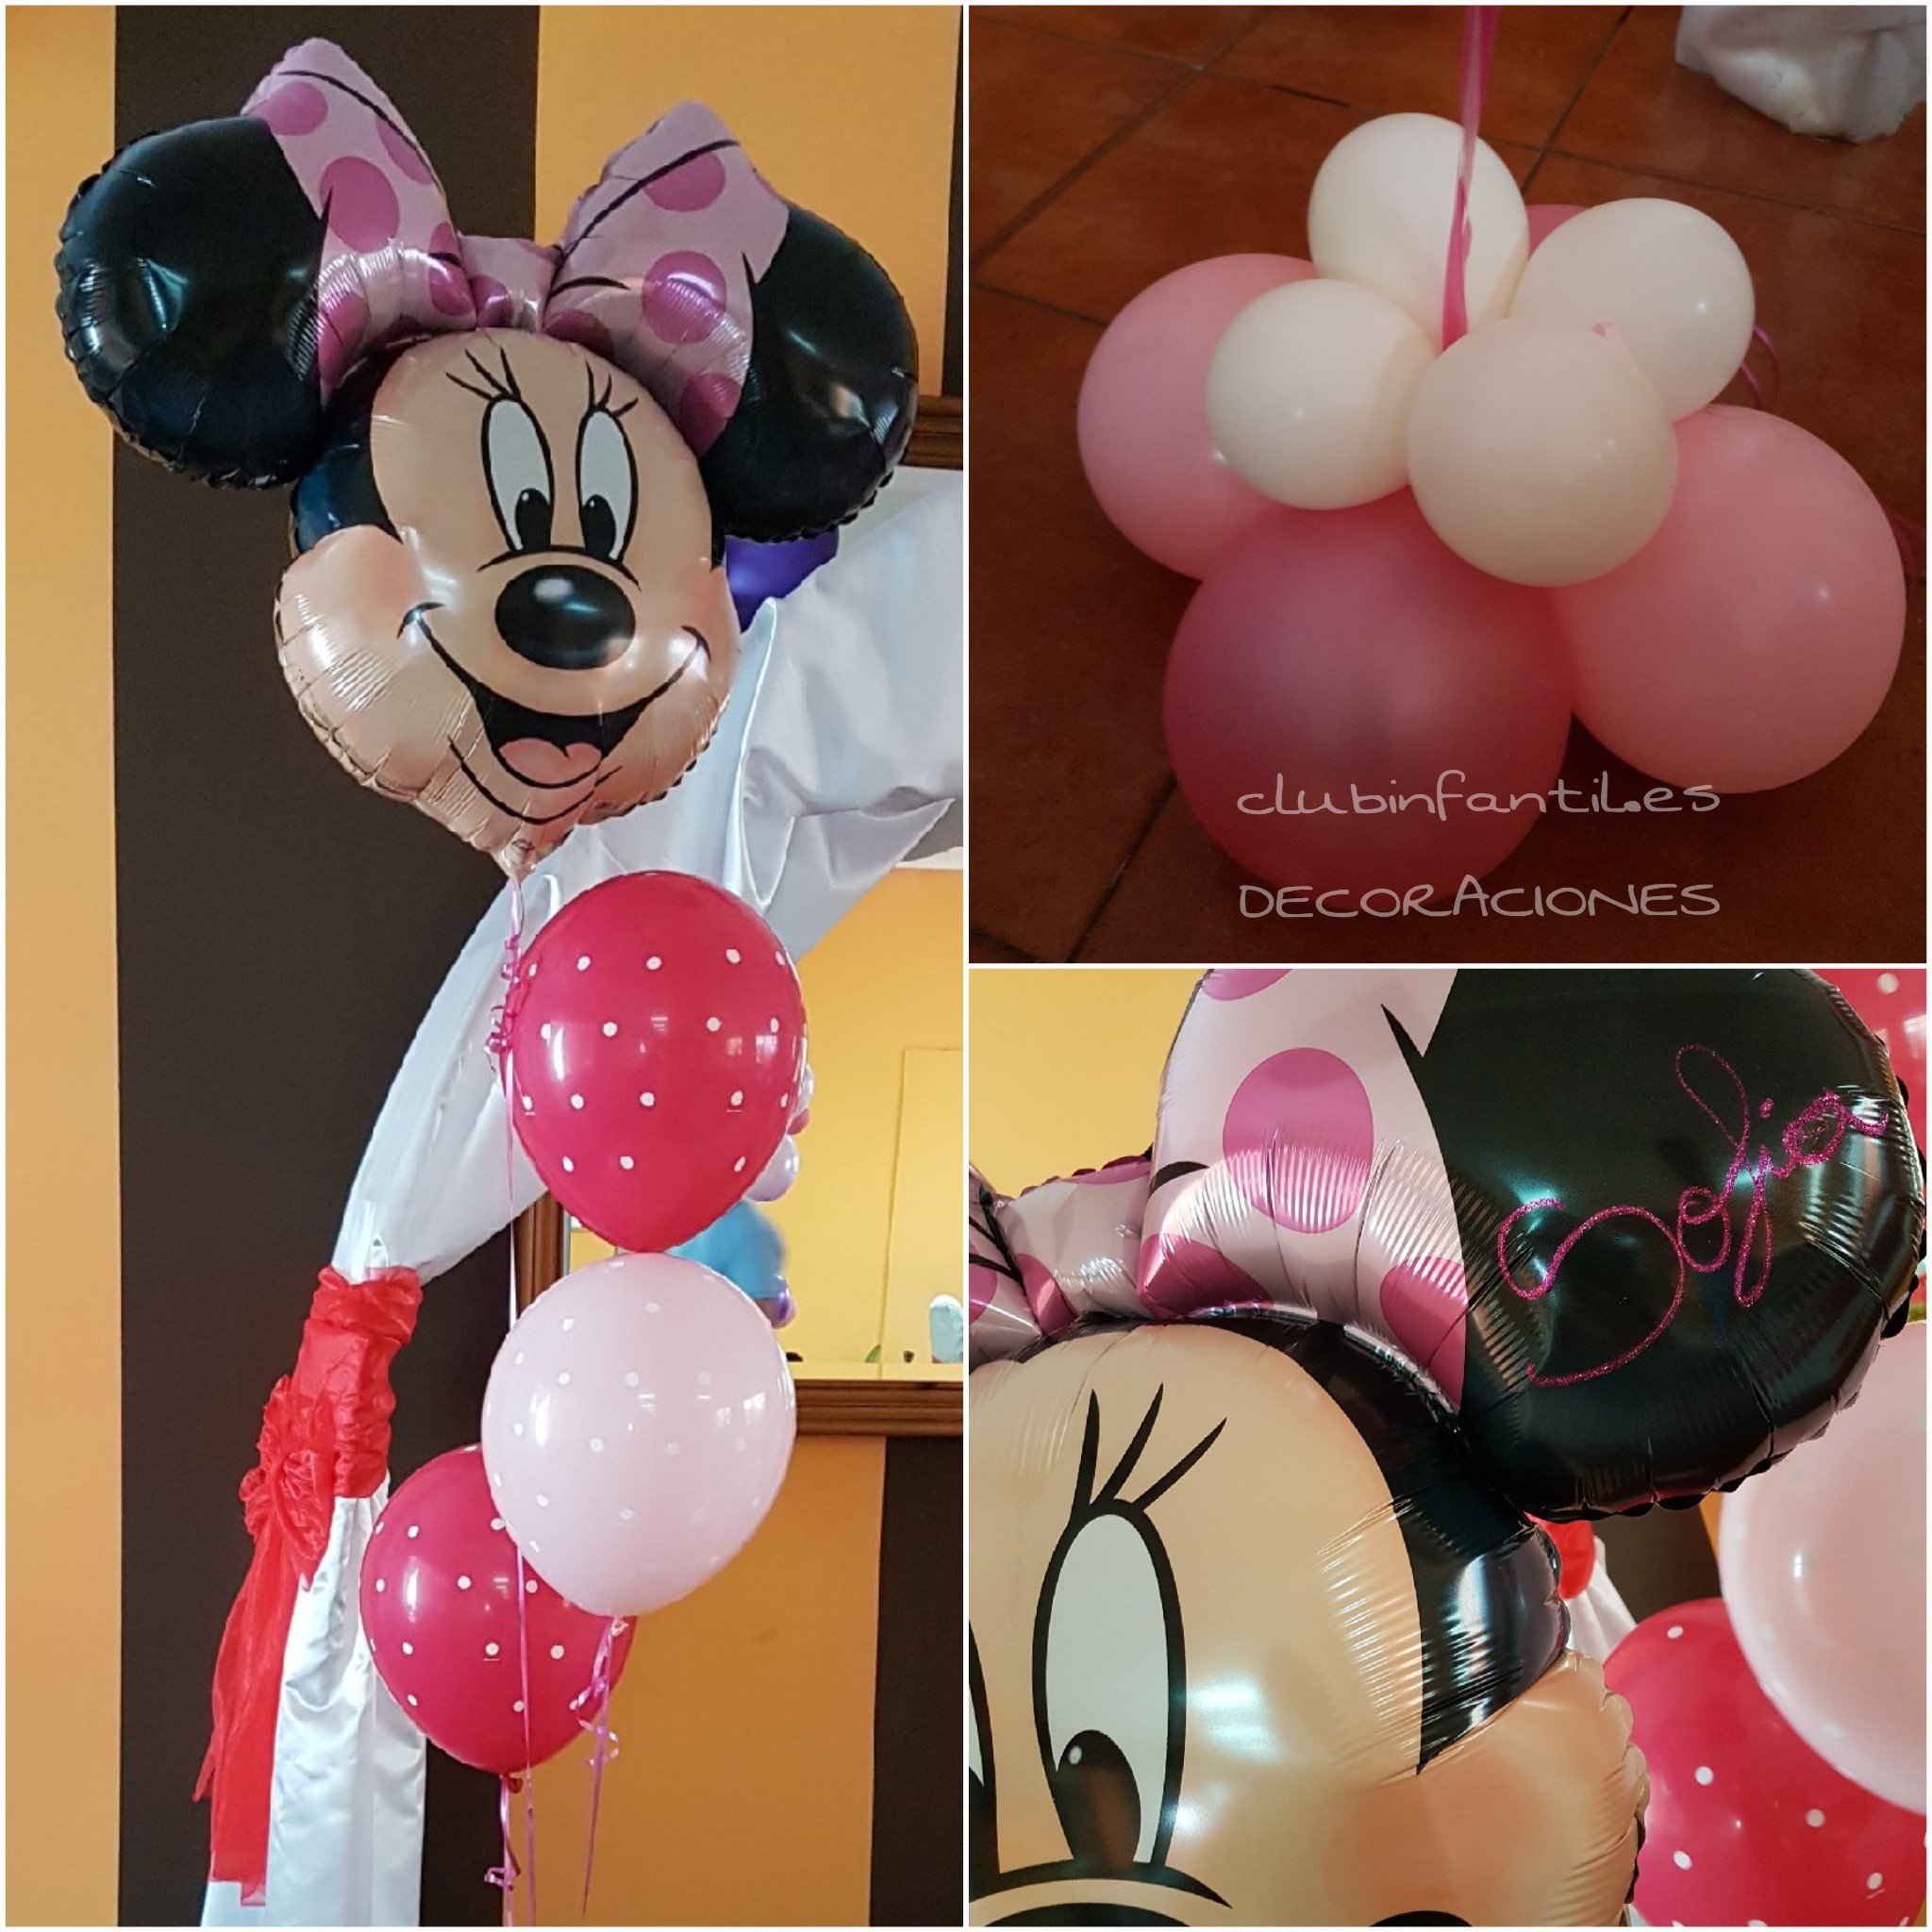 Decoraciones con globos informate de todo club infantil for Todo decoracion